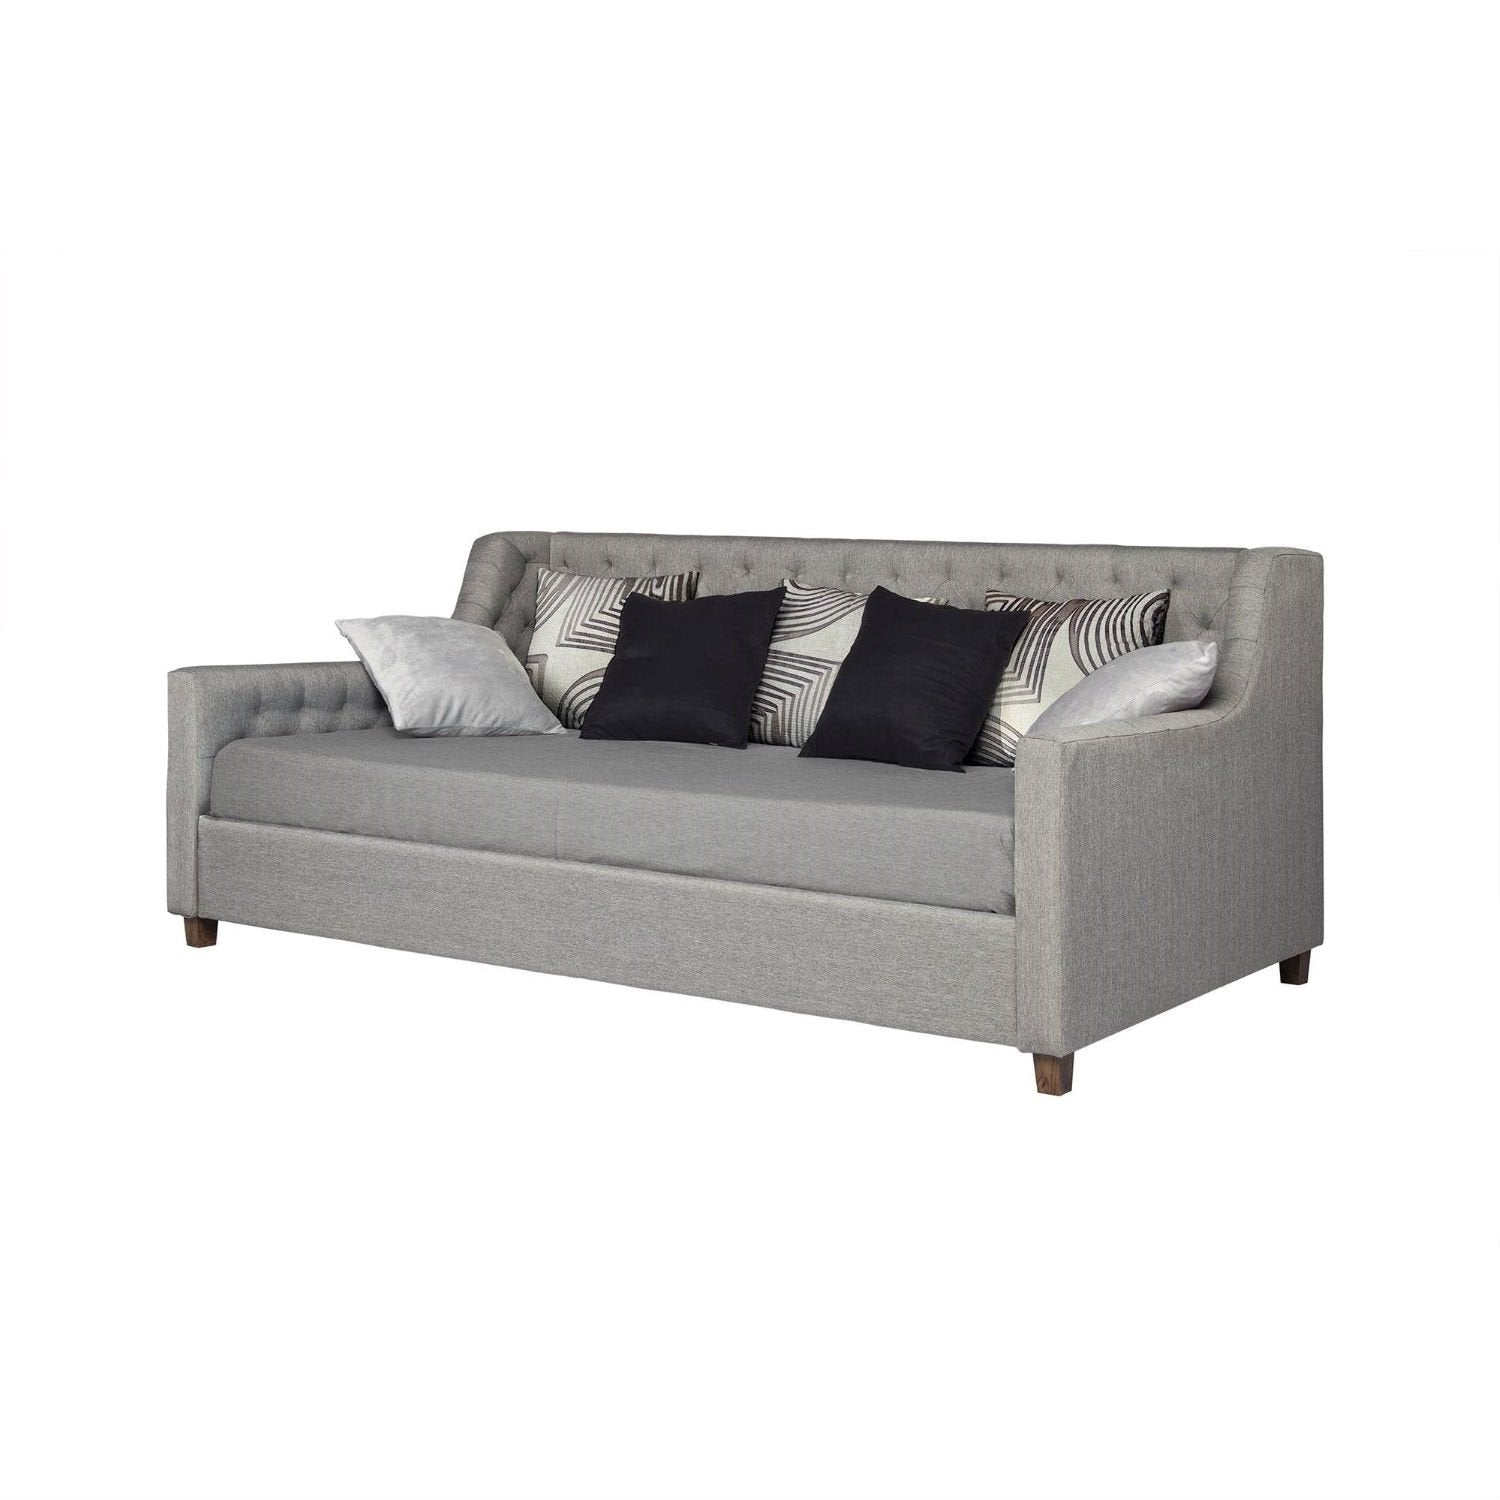 Twin size Grey Linen Upholstered Sofa Daybed with Tufted Detailing and Wood Legs